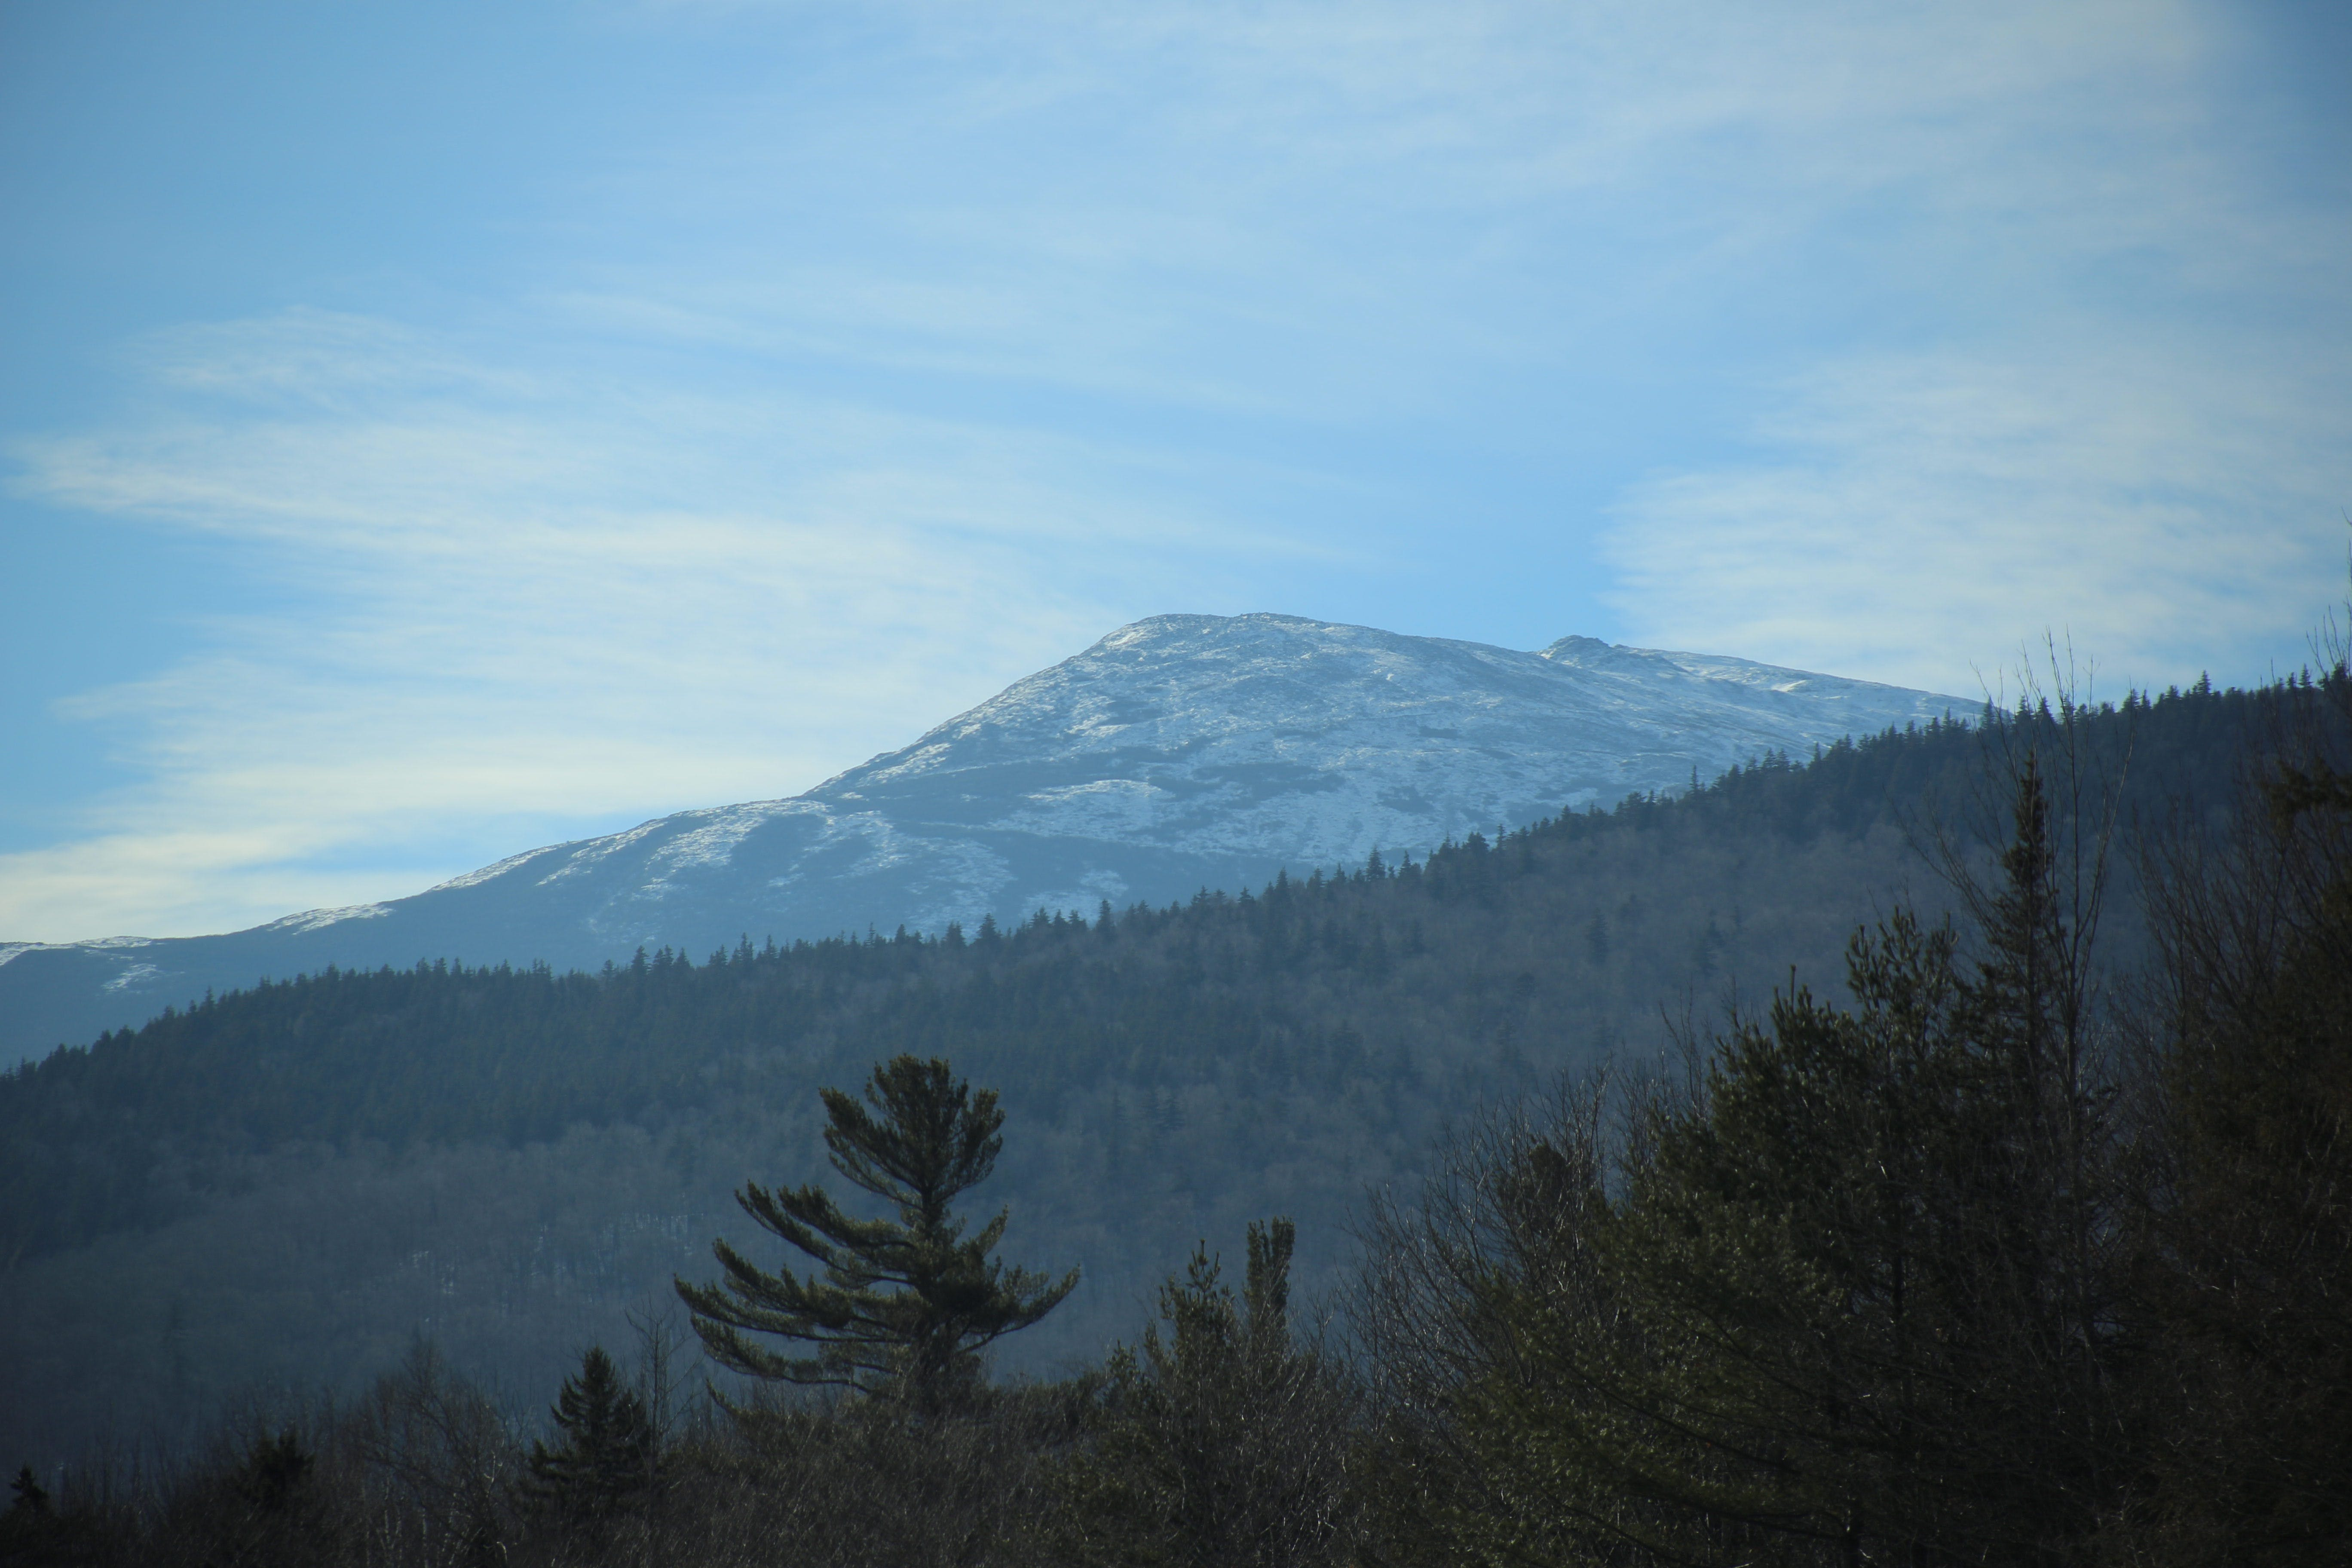 High Rise Mountain during Deay Time